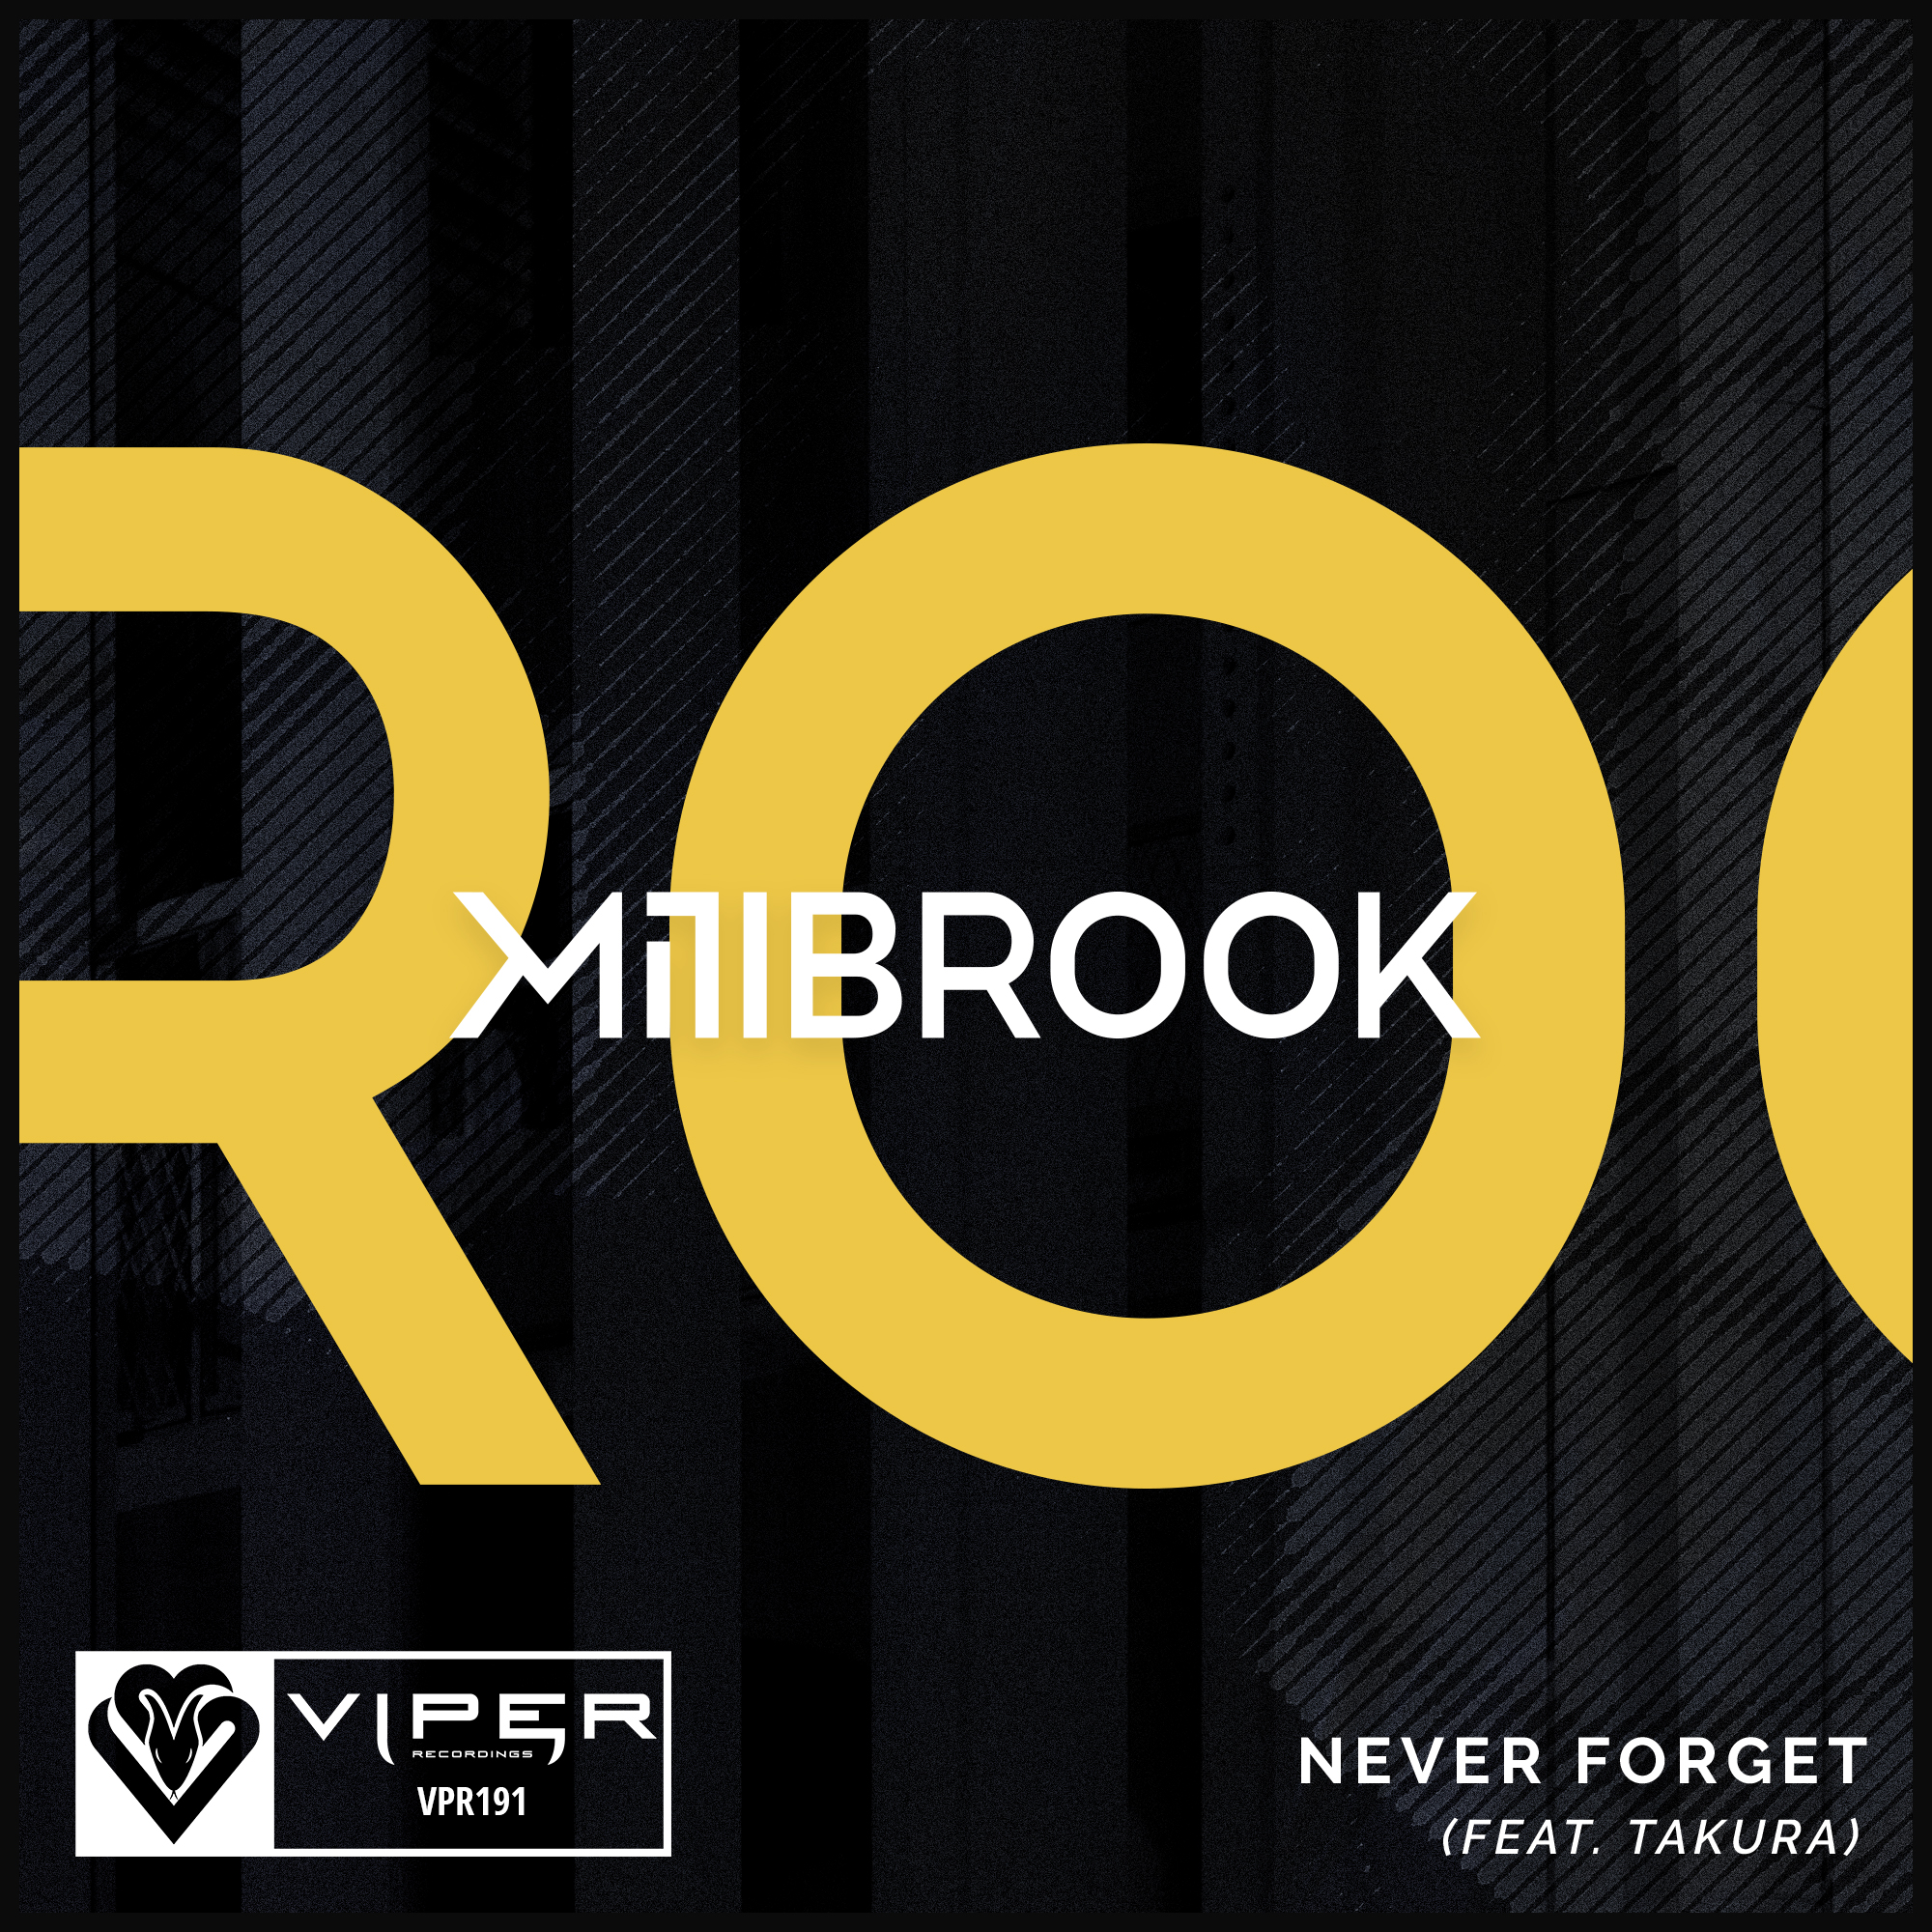 Millbrook - Never Forget feat. Takura [VPR191]